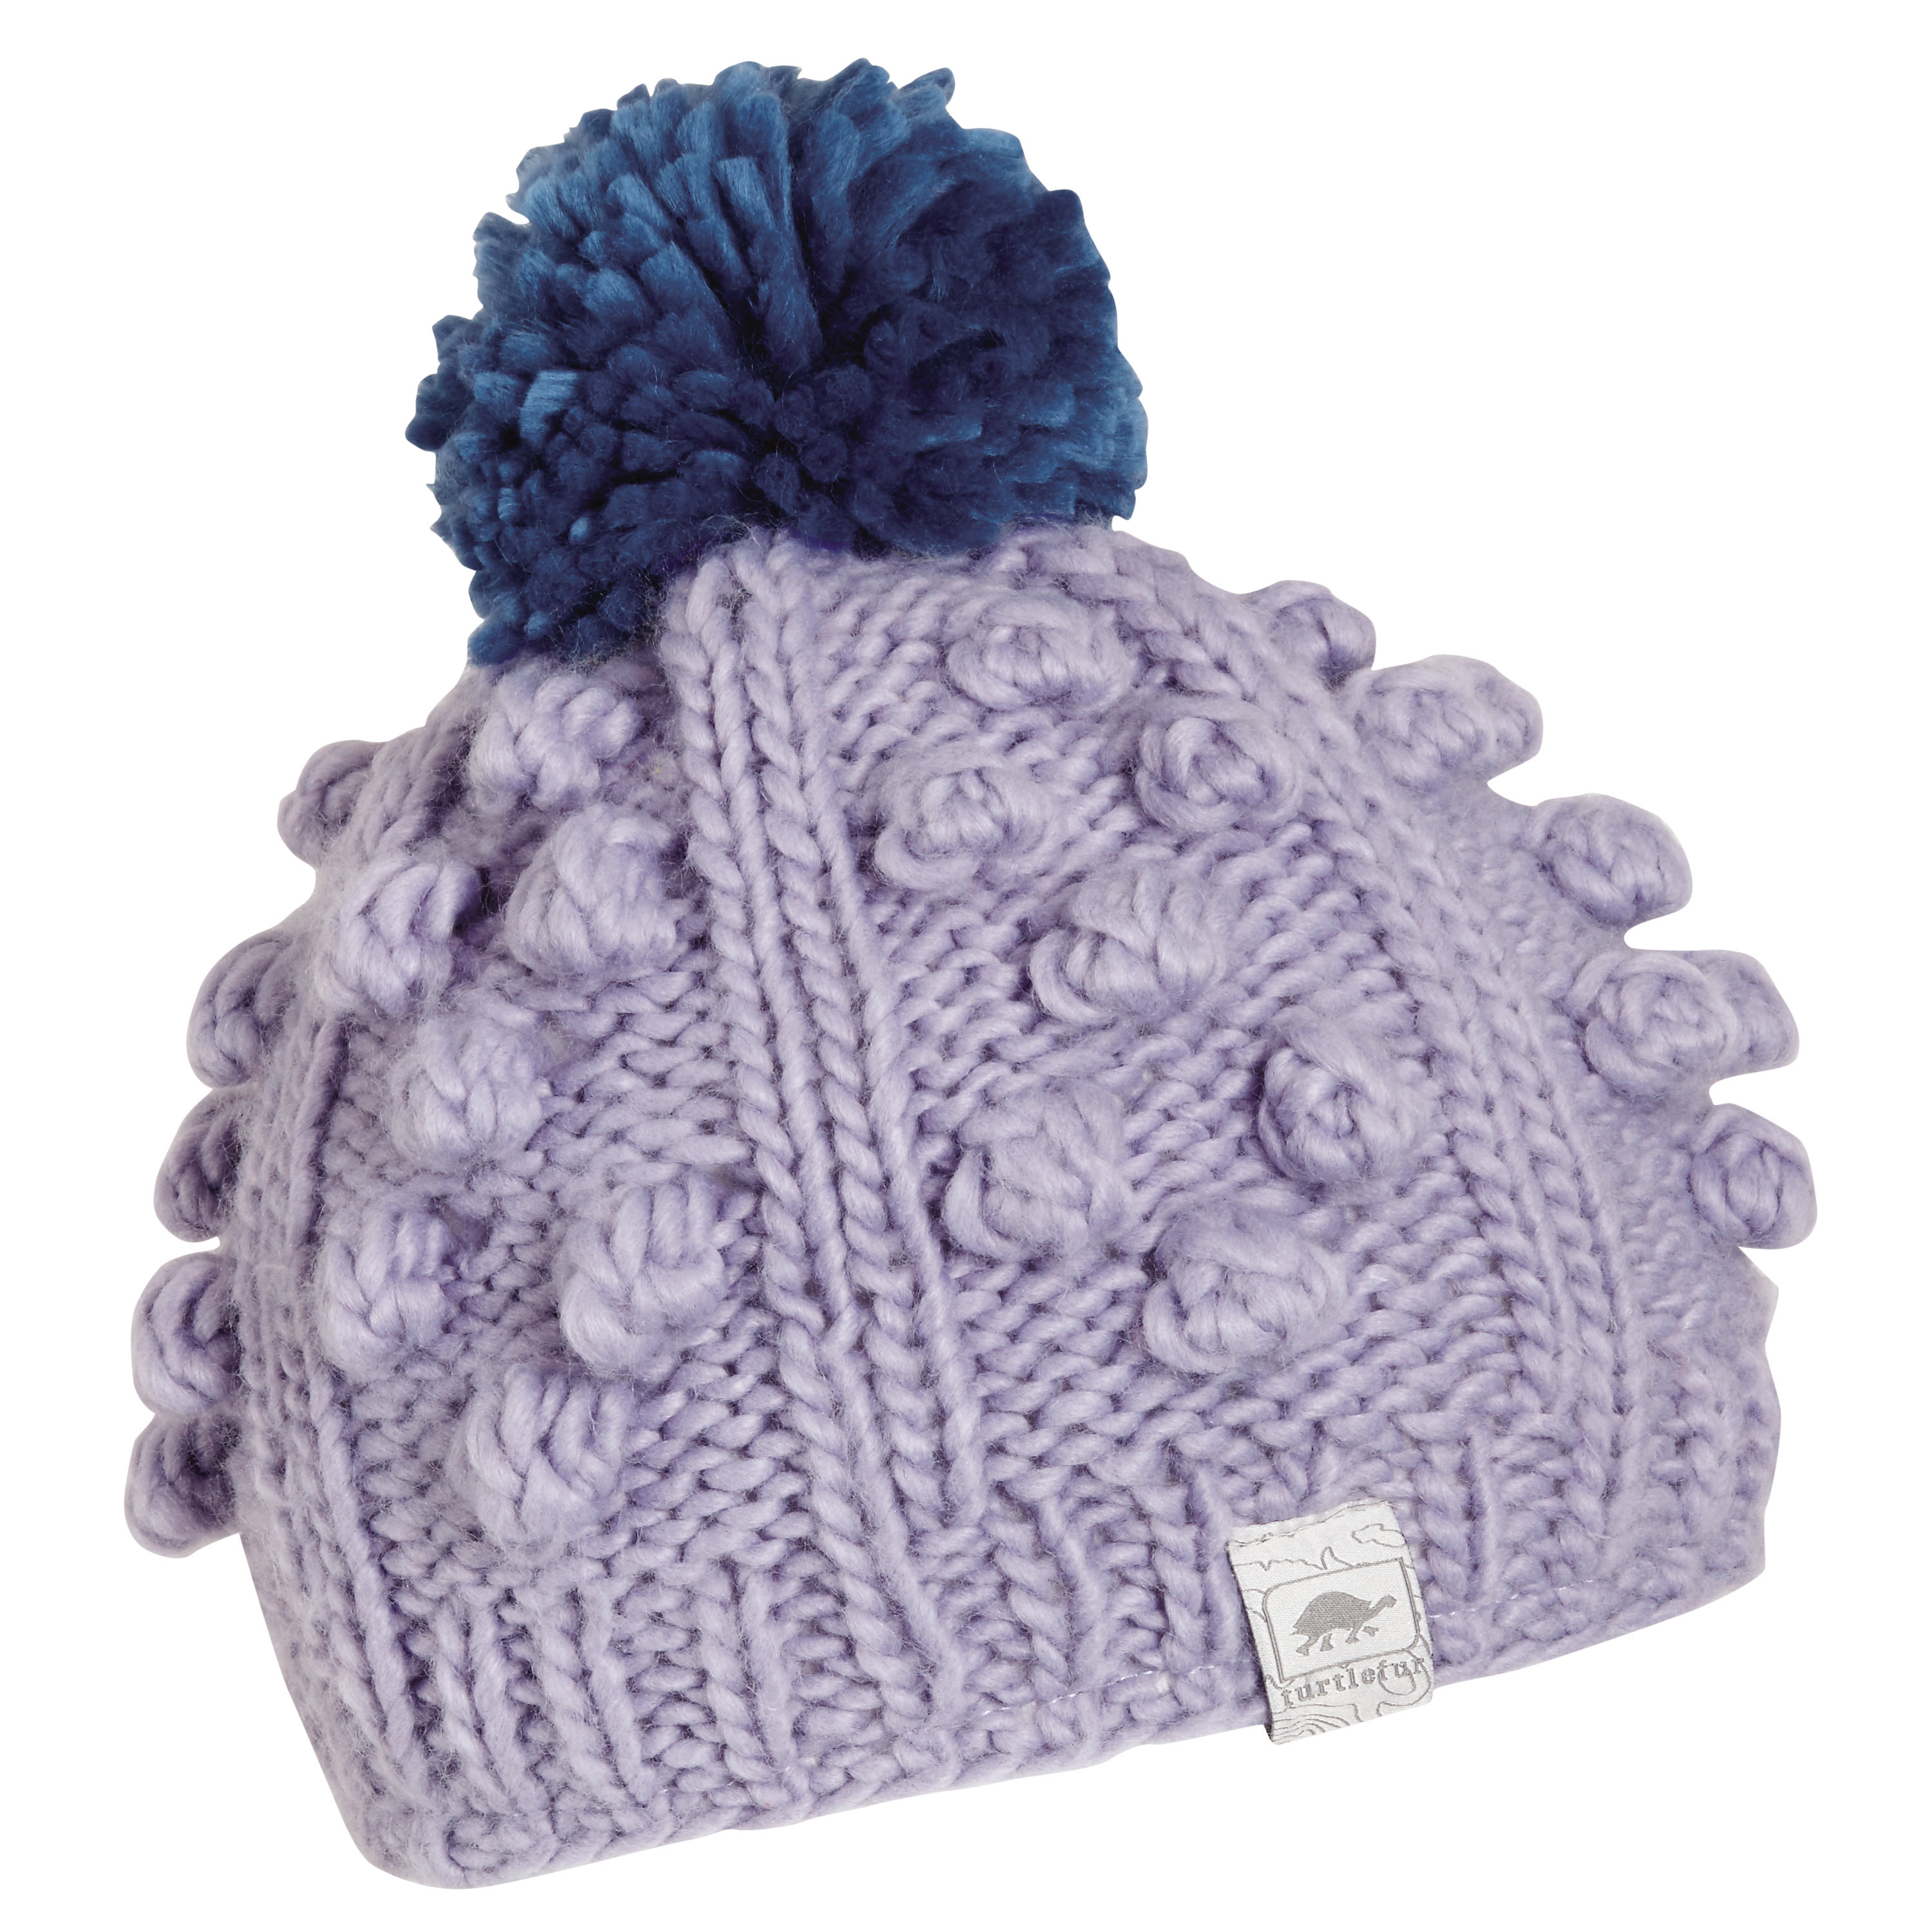 578d51af760a7b Turtle Fur Zola Girl's Chunky Hand Knit Fleece Lined Pom Winter Hat -  Walmart.com